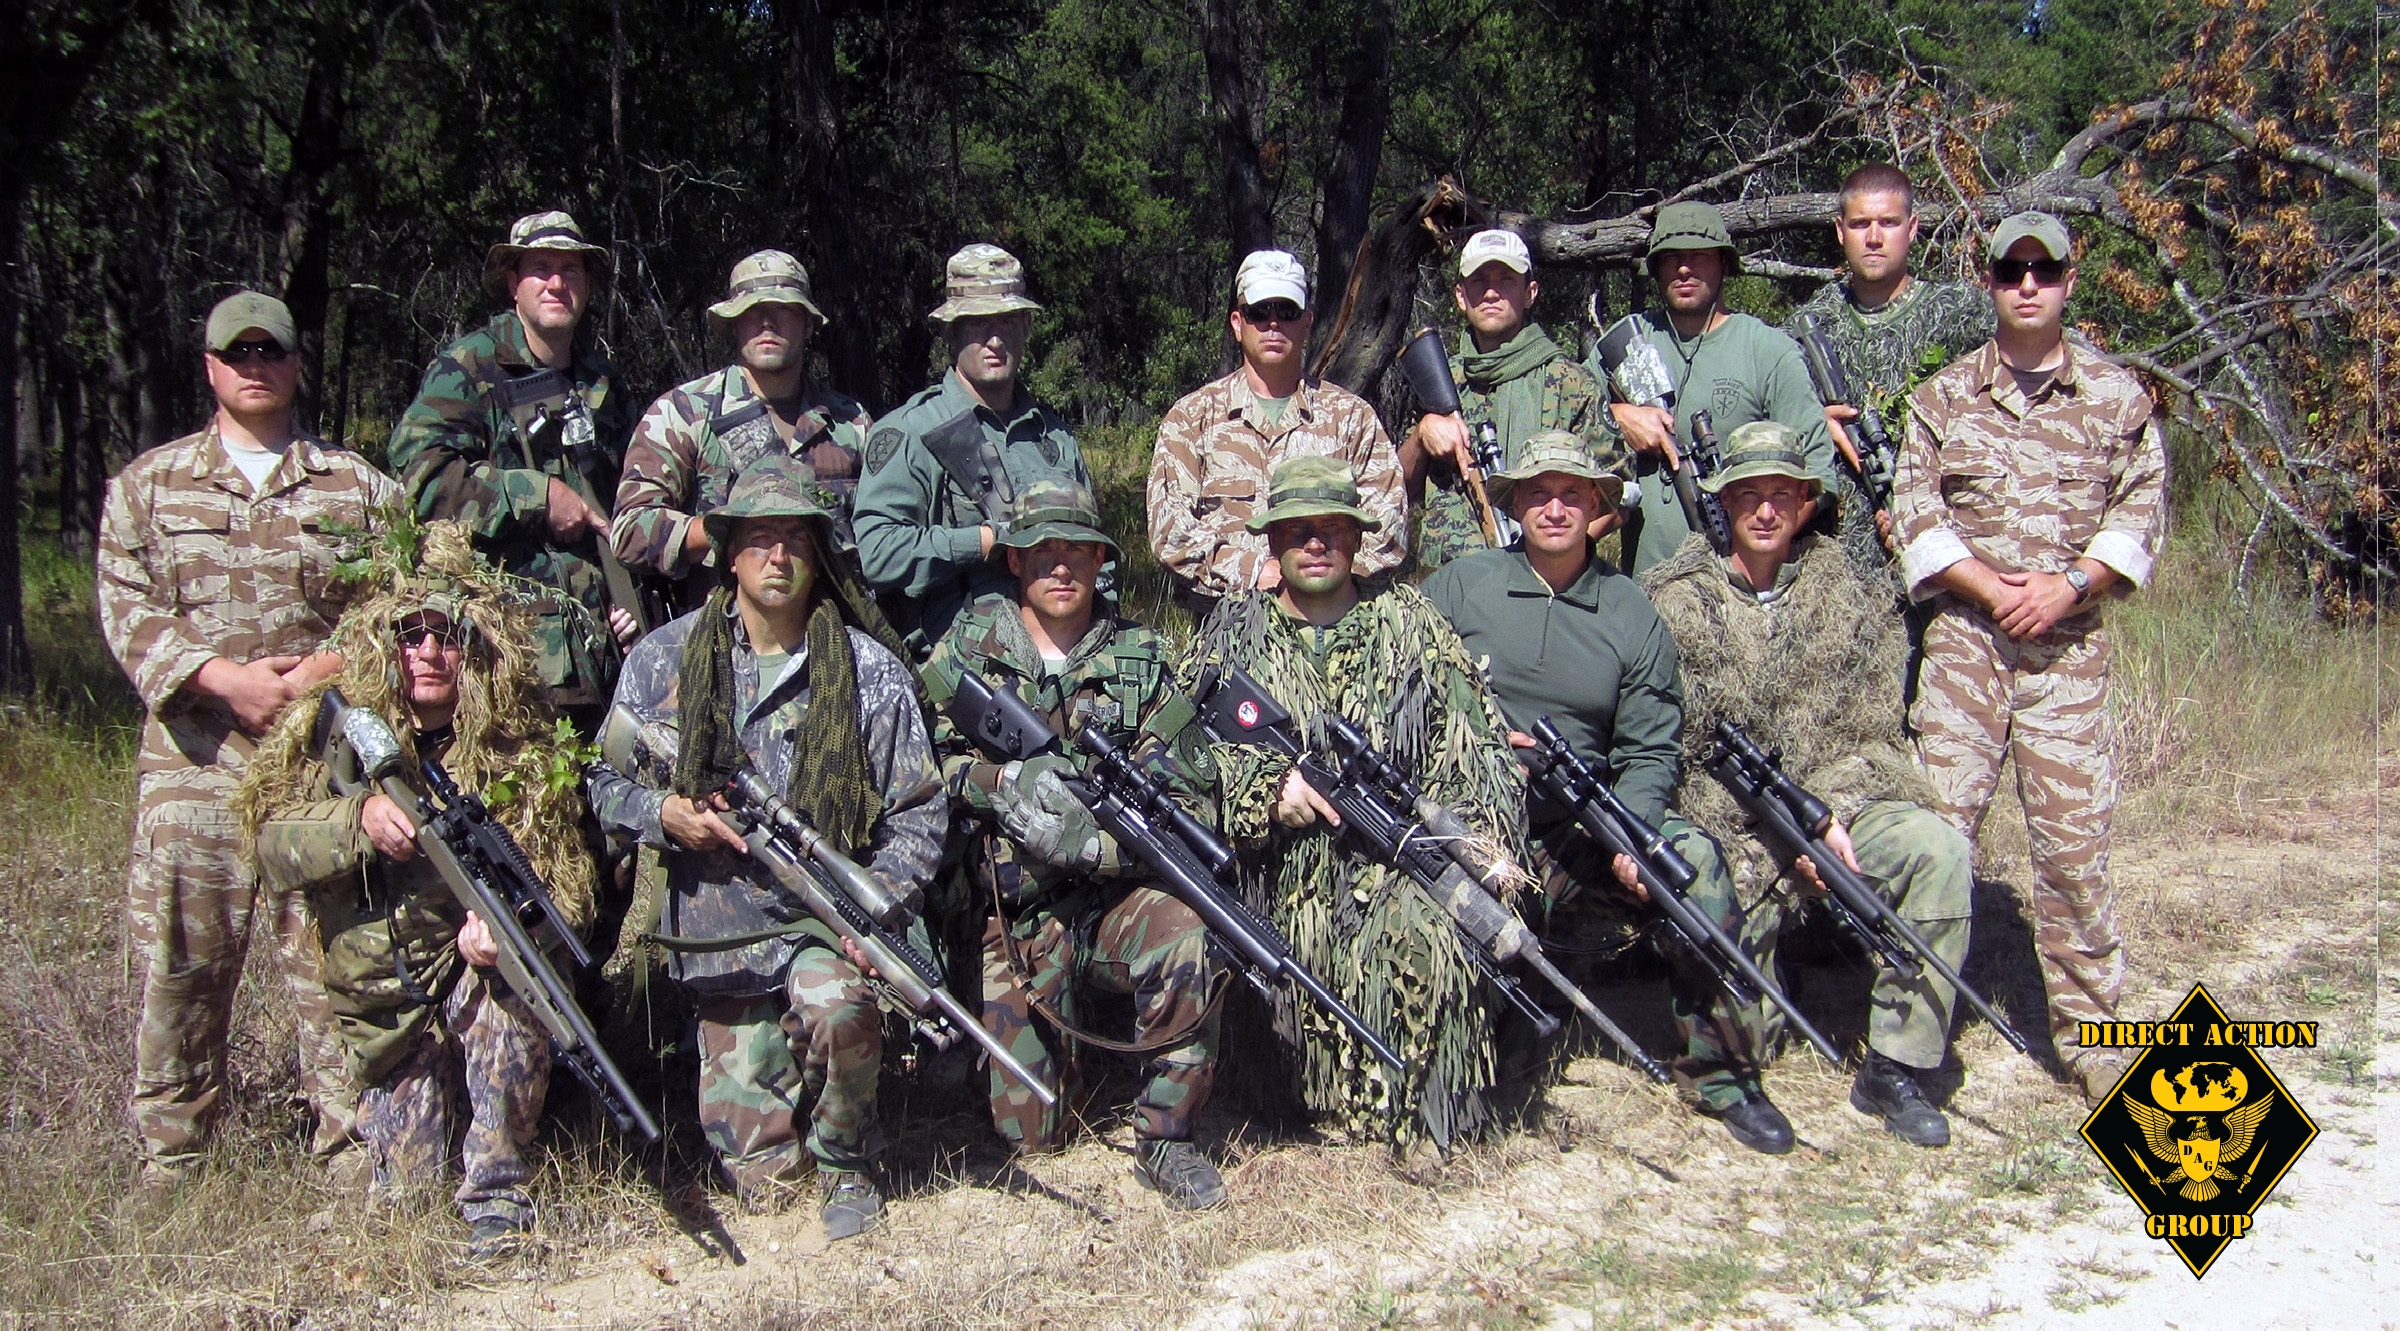 SNIPER OPS 1 FT McCOY SEPT 2013.jpg